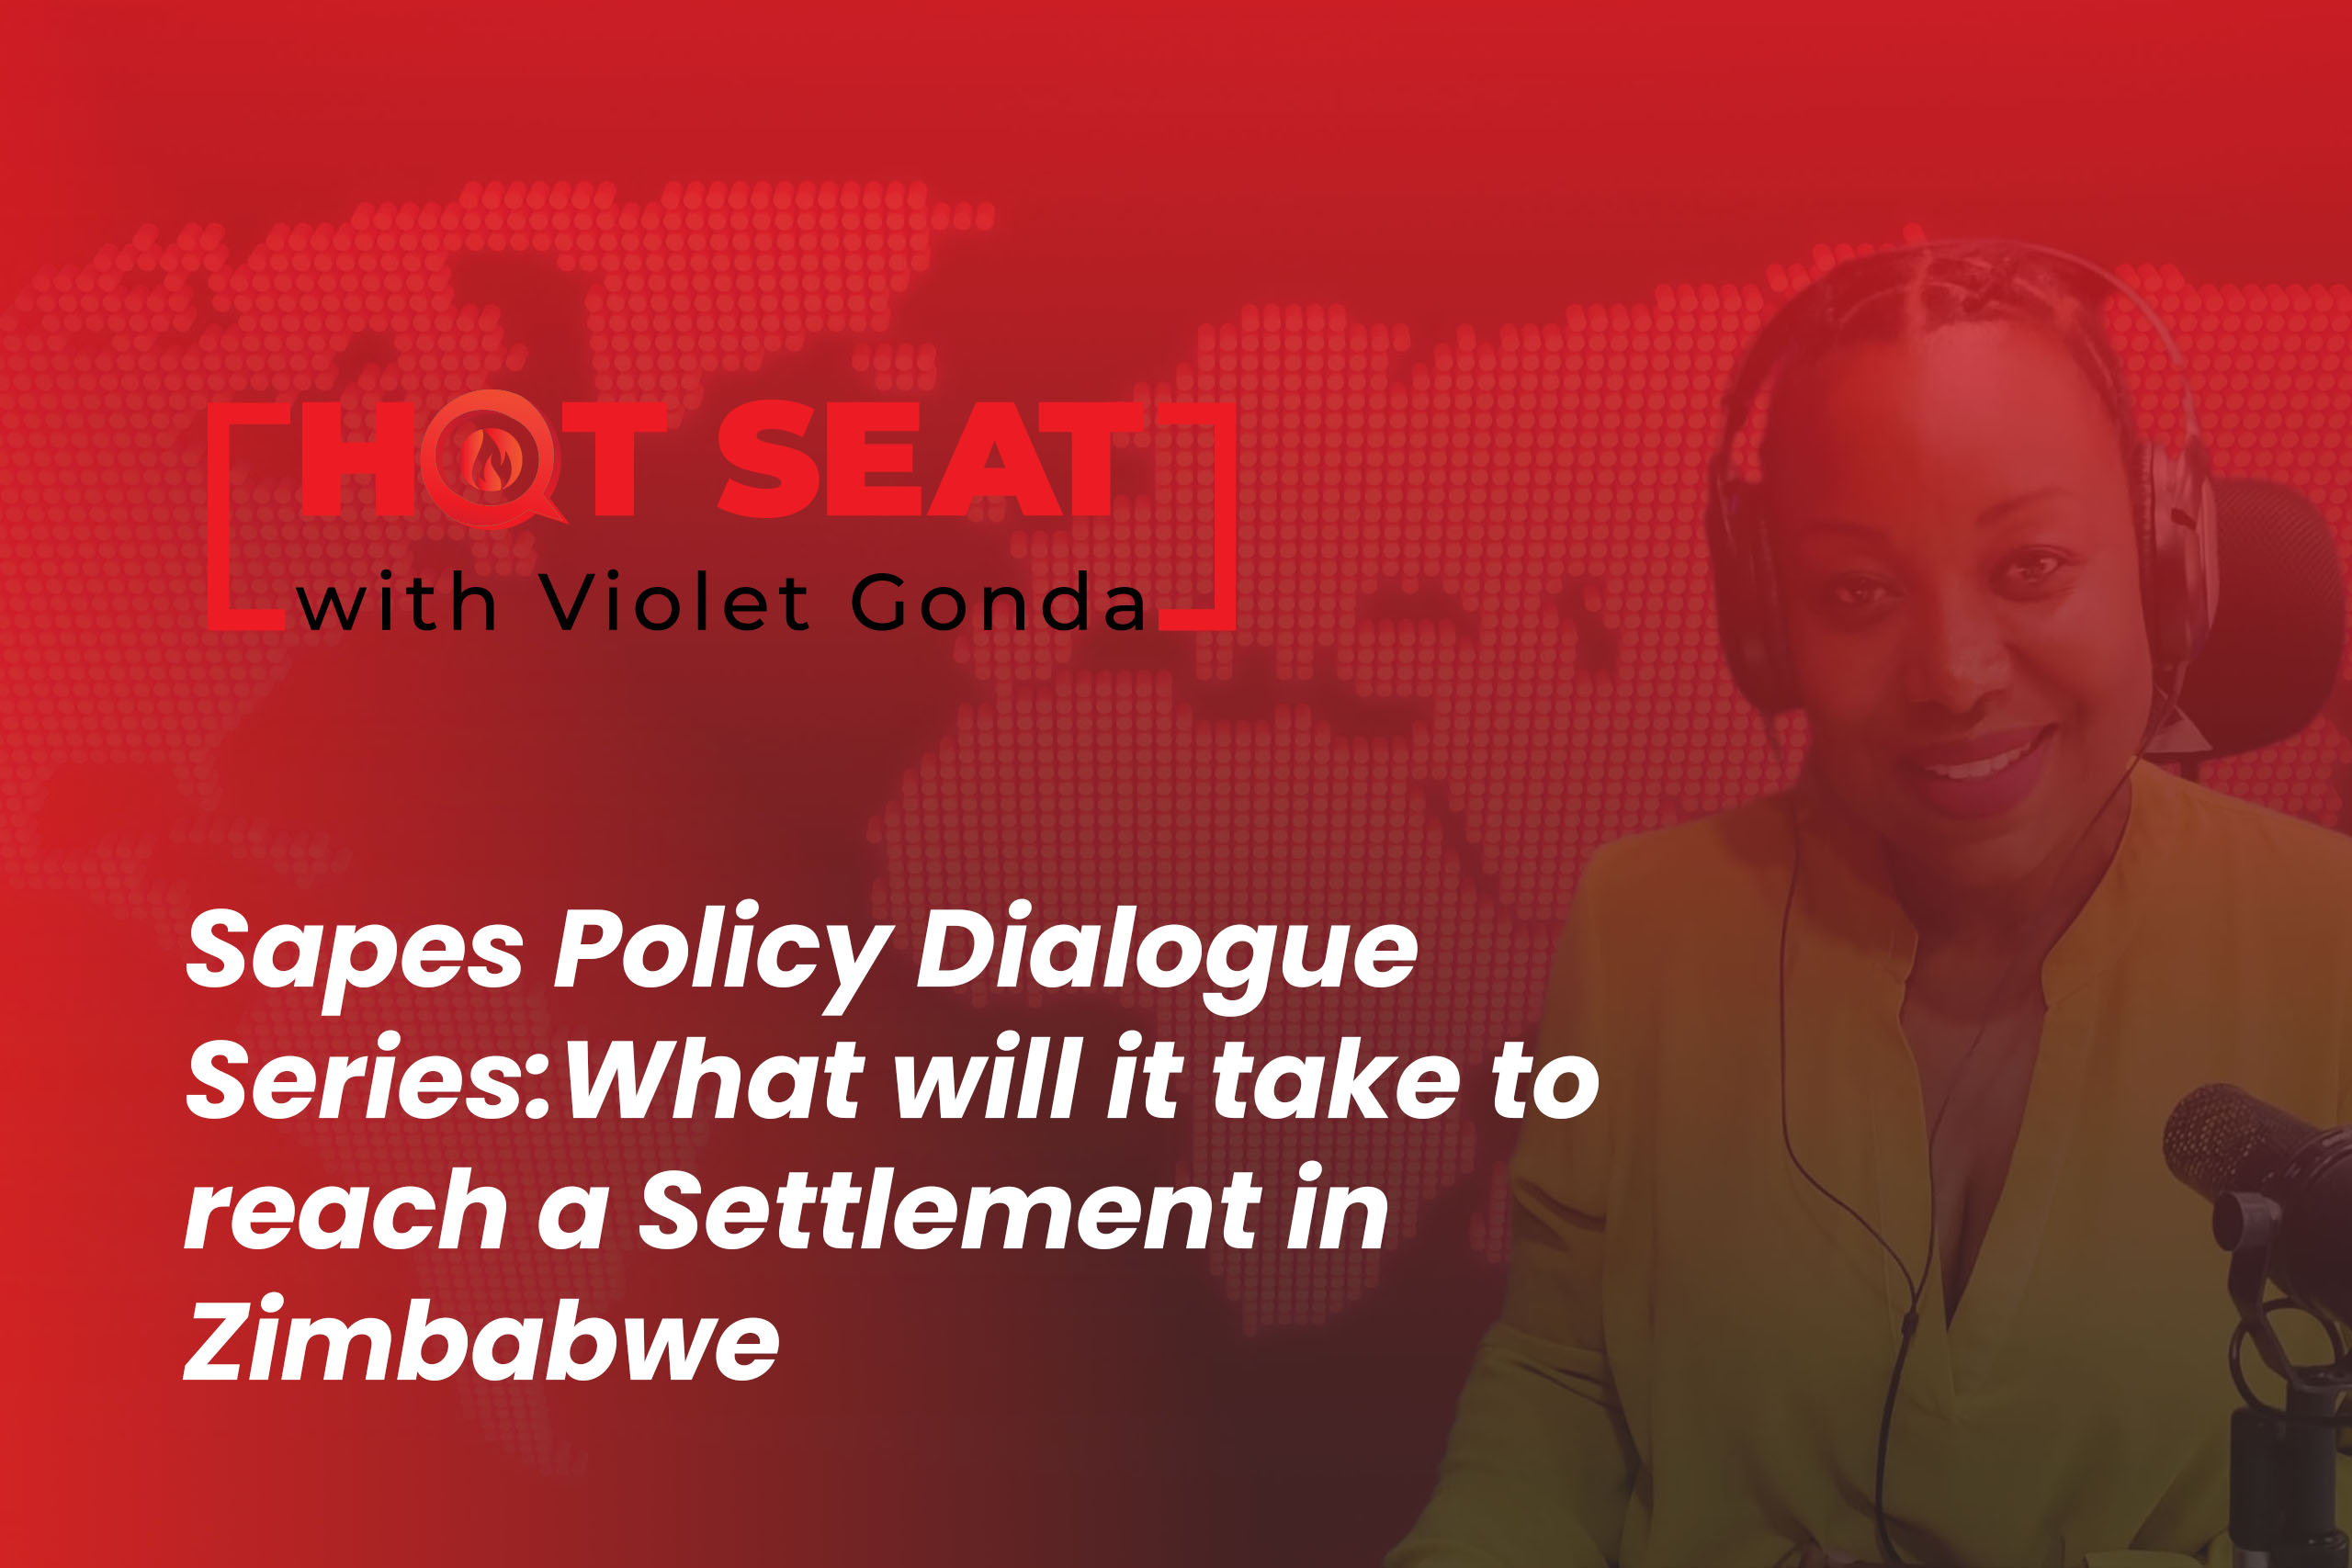 """""""Zimbabwe's Deepening Crisis and we are looking for the way forward"""": Today's theme is: What will it take to reach a Settlement in Zimbabwe? The fundamental questions we will be asking are: Is the Zimbabwean crisis sufficient that it requires international pressure? What should we expect from the regional and International community?"""